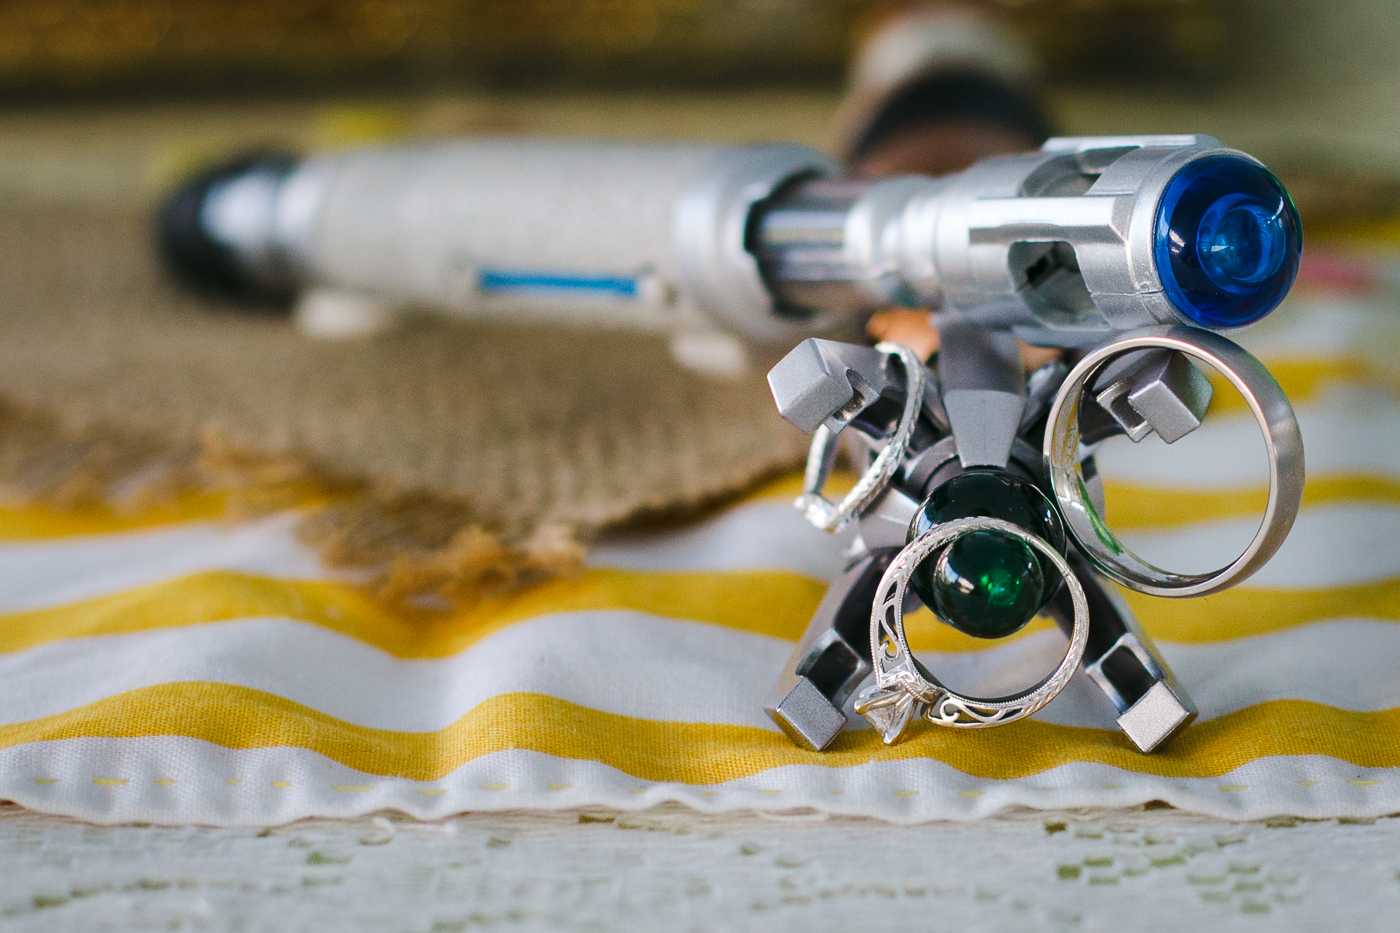 dr-who-sonic-screwdrivers-wedding-rings-closeup-cool-lixxim-photography